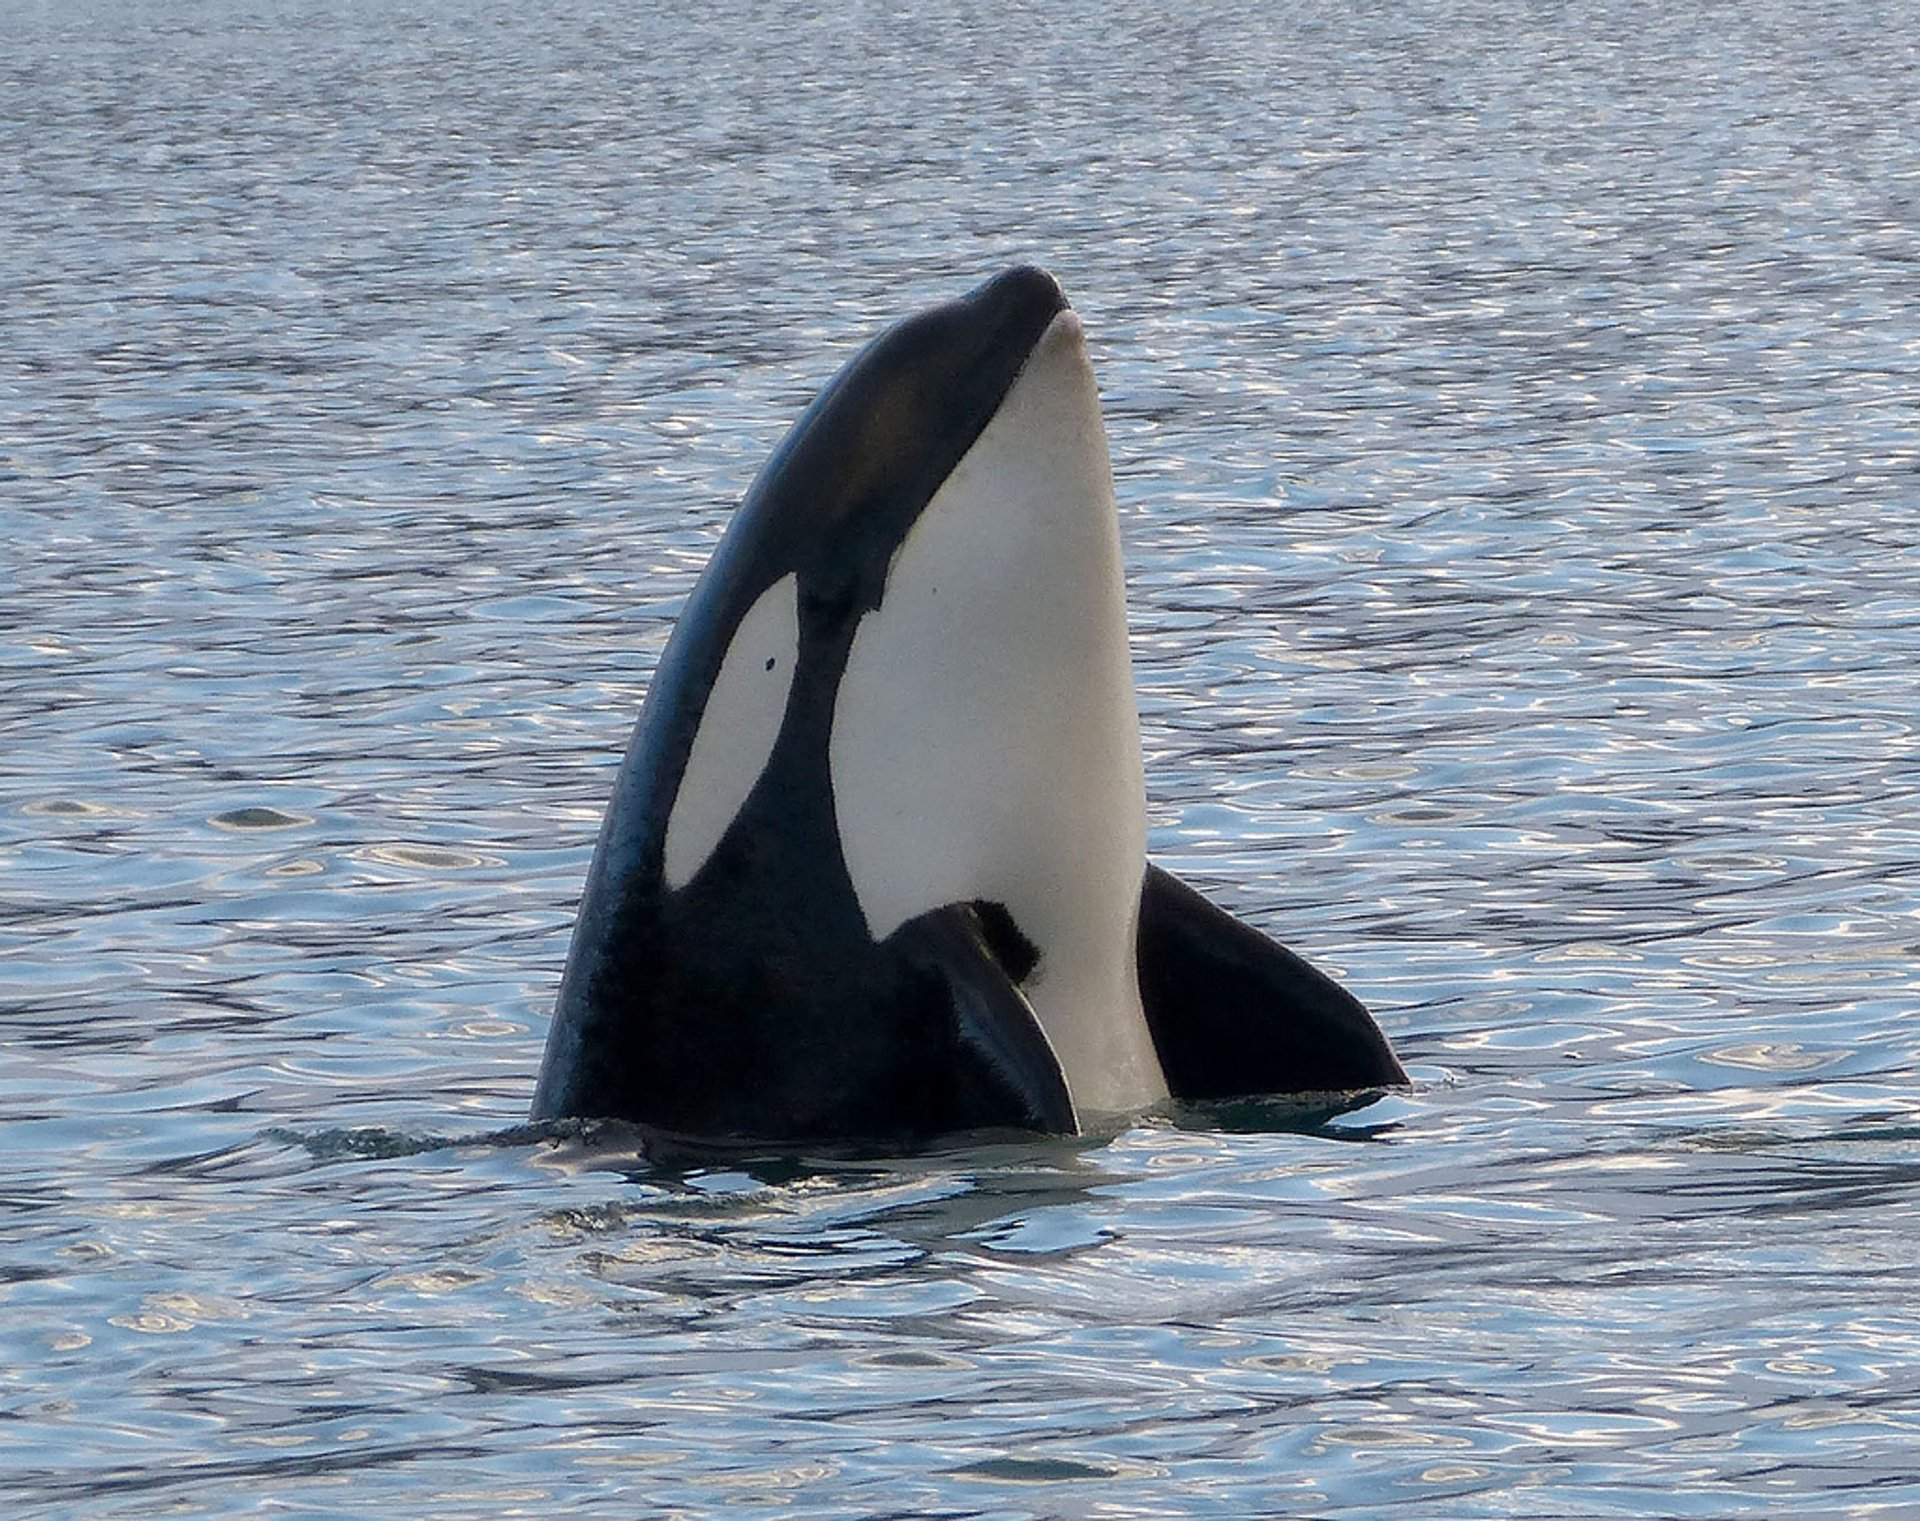 Orca (Killer) Whale Watching in Iceland - Best Season 2020